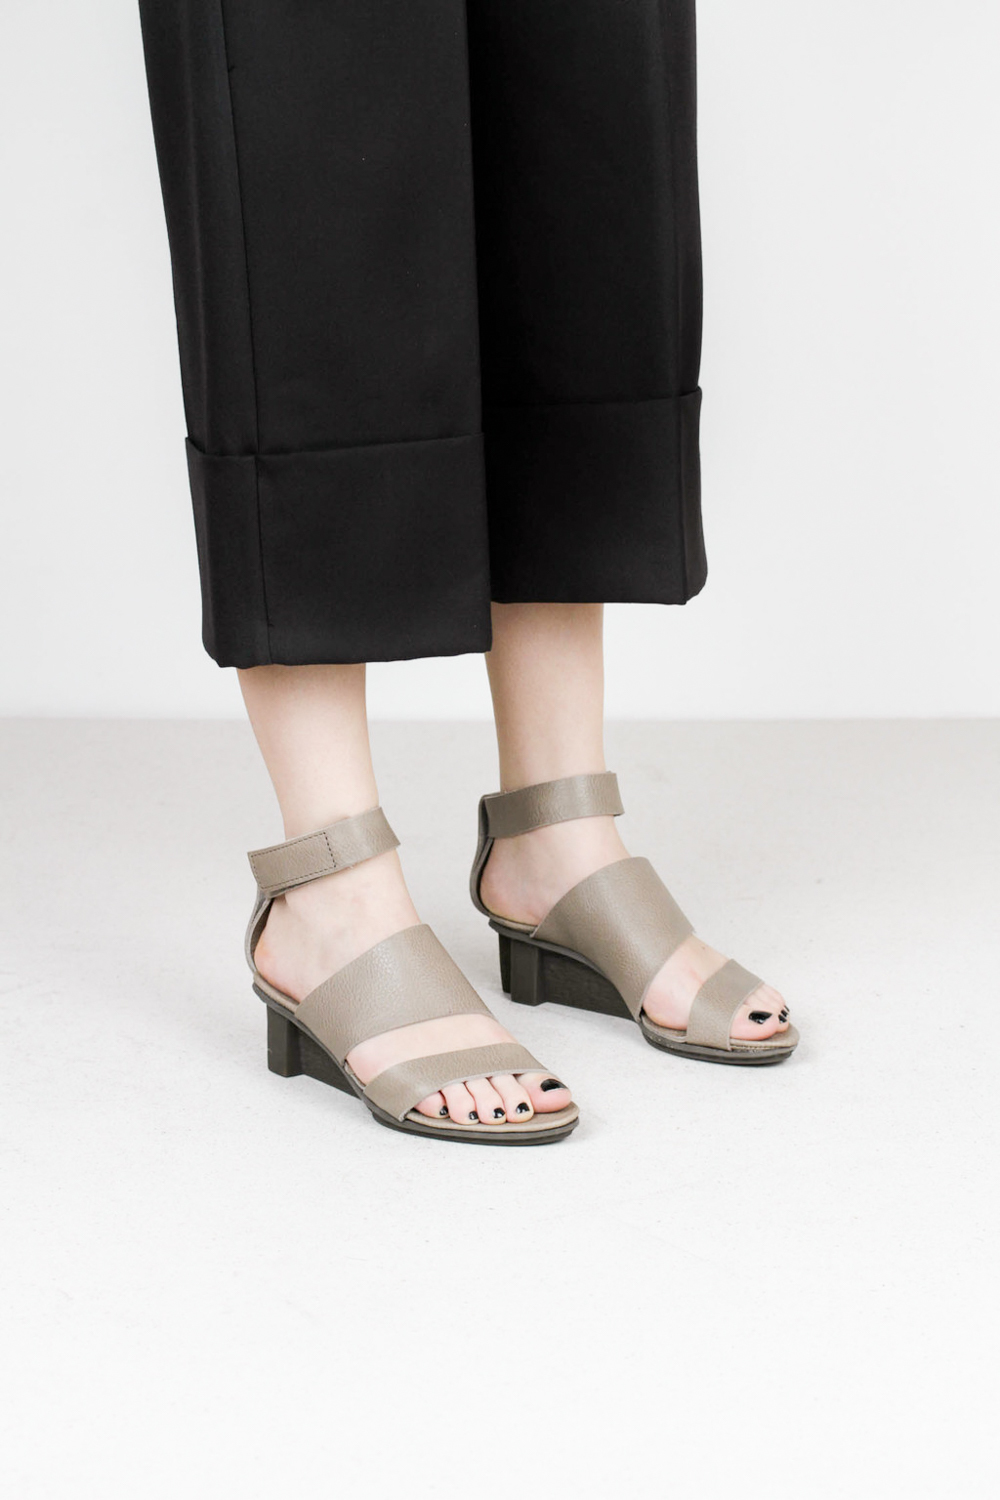 Trippen pulse f waw cloud leather sandals